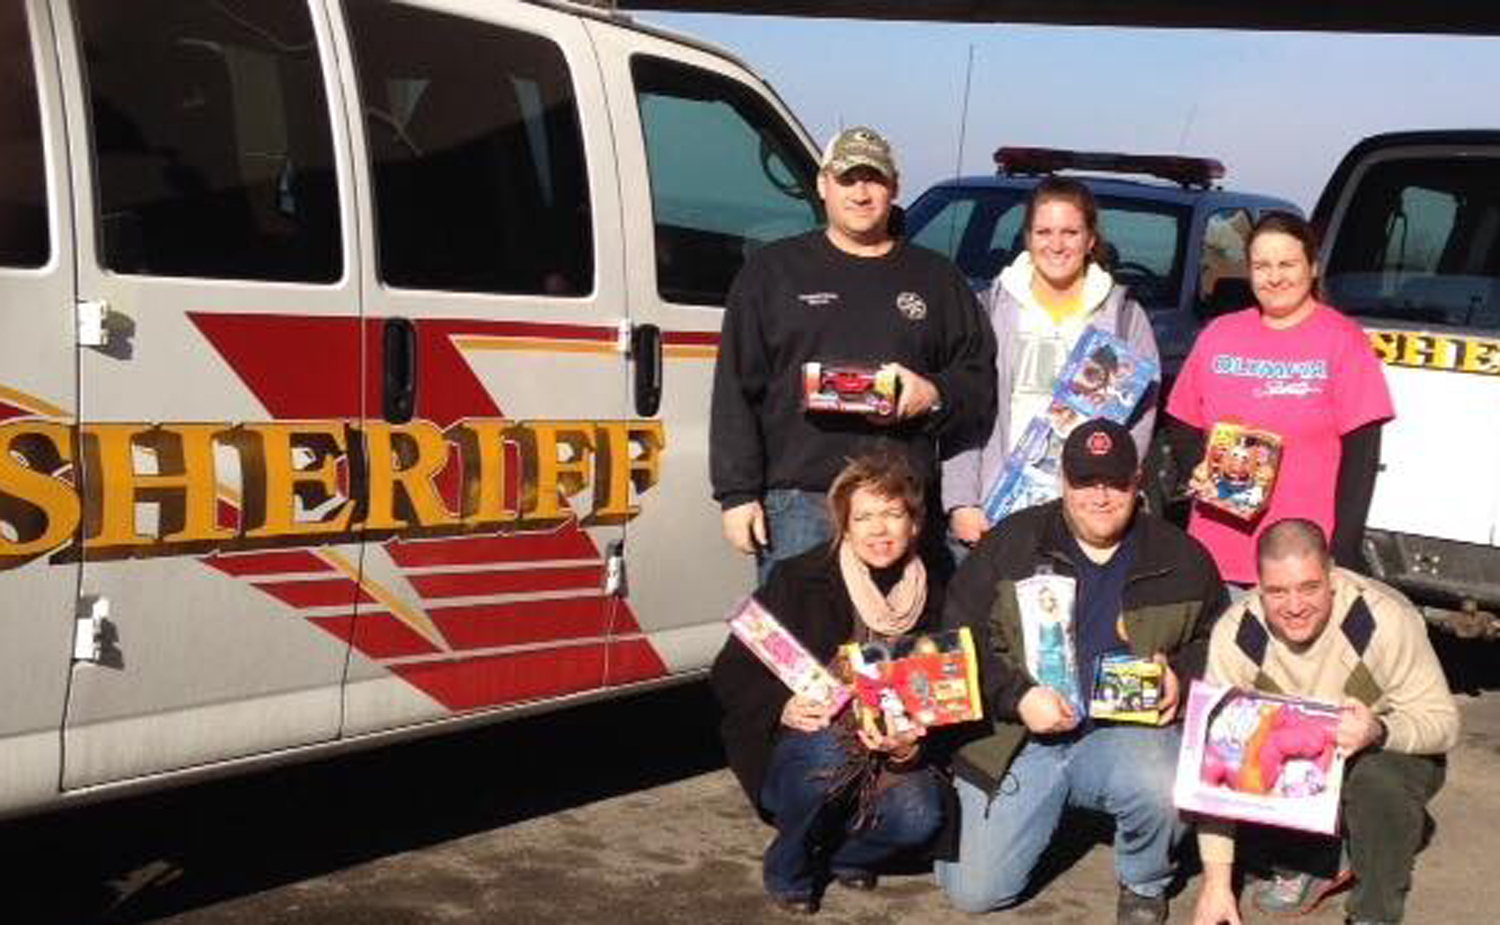 Local Organizations Come Together to Help 12 Families During Holidays